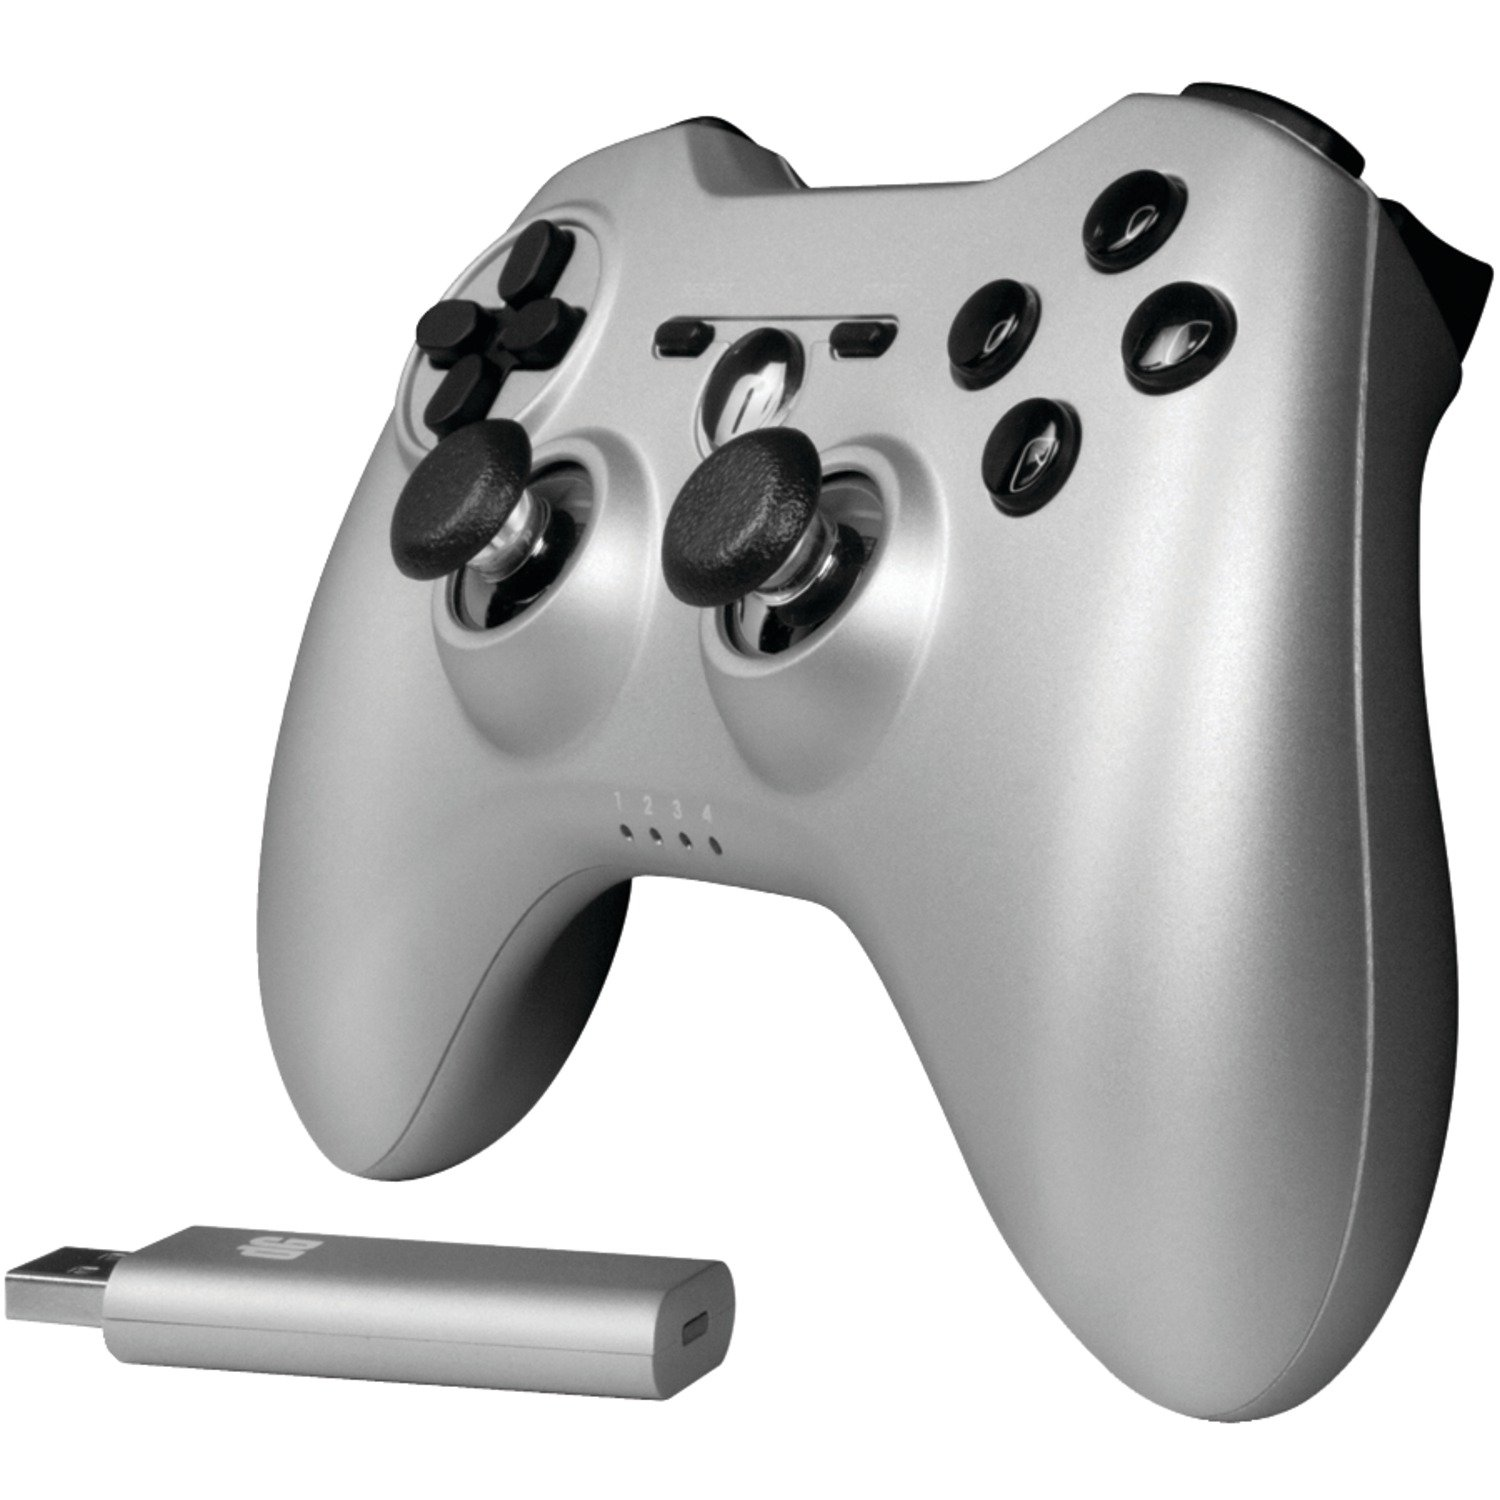 Dreamgear Phenom Wireless Controller - Wireless - , Cable - Usbplaystation 3 (dgps3-3848)